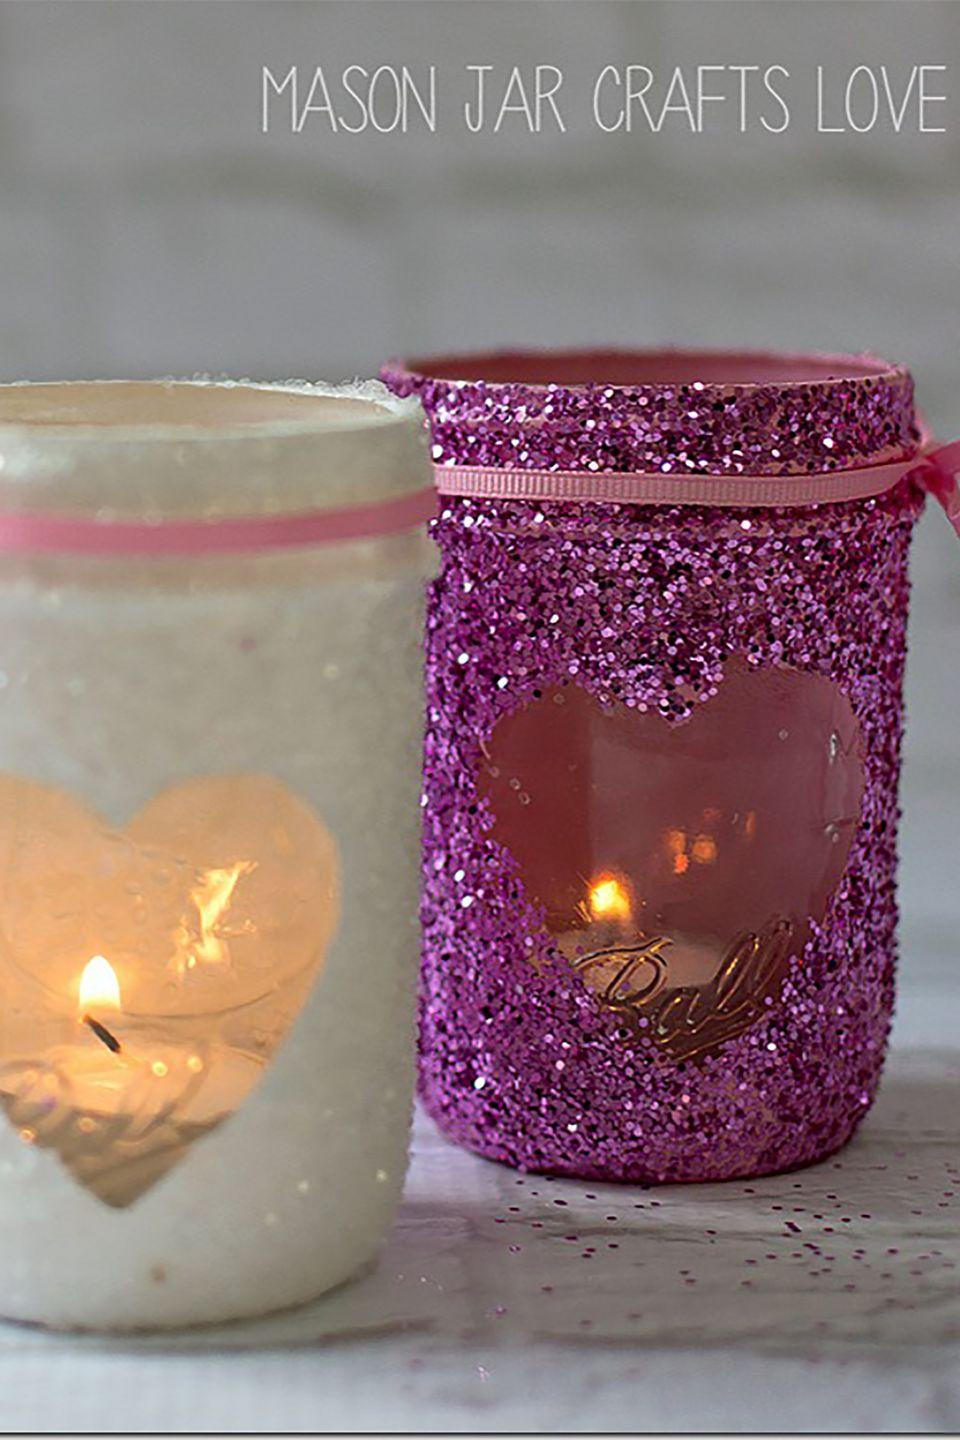 """<p>Spruce up your spare Mason jars with glitter to create the cutest candles for Valentine's Day.</p><p><strong>Get the tutorial at <a href=""""http://masonjarcraftslove.com/valentine-glitter-votives/"""" rel=""""nofollow noopener"""" target=""""_blank"""" data-ylk=""""slk:Mason Jar Craft Love"""" class=""""link rapid-noclick-resp"""">Mason Jar Craft Love</a>. </strong></p><p><strong><a class=""""link rapid-noclick-resp"""" href=""""https://www.amazon.com/s/ref=nb_sb_noss_2?url=search-alias%3Dgarden&field-keywords=mason+jars&tag=syn-yahoo-20&ascsubtag=%5Bartid%7C10050.g.2971%5Bsrc%7Cyahoo-us"""" rel=""""nofollow noopener"""" target=""""_blank"""" data-ylk=""""slk:SHOP MASON JARS"""">SHOP MASON JARS</a><br></strong></p>"""